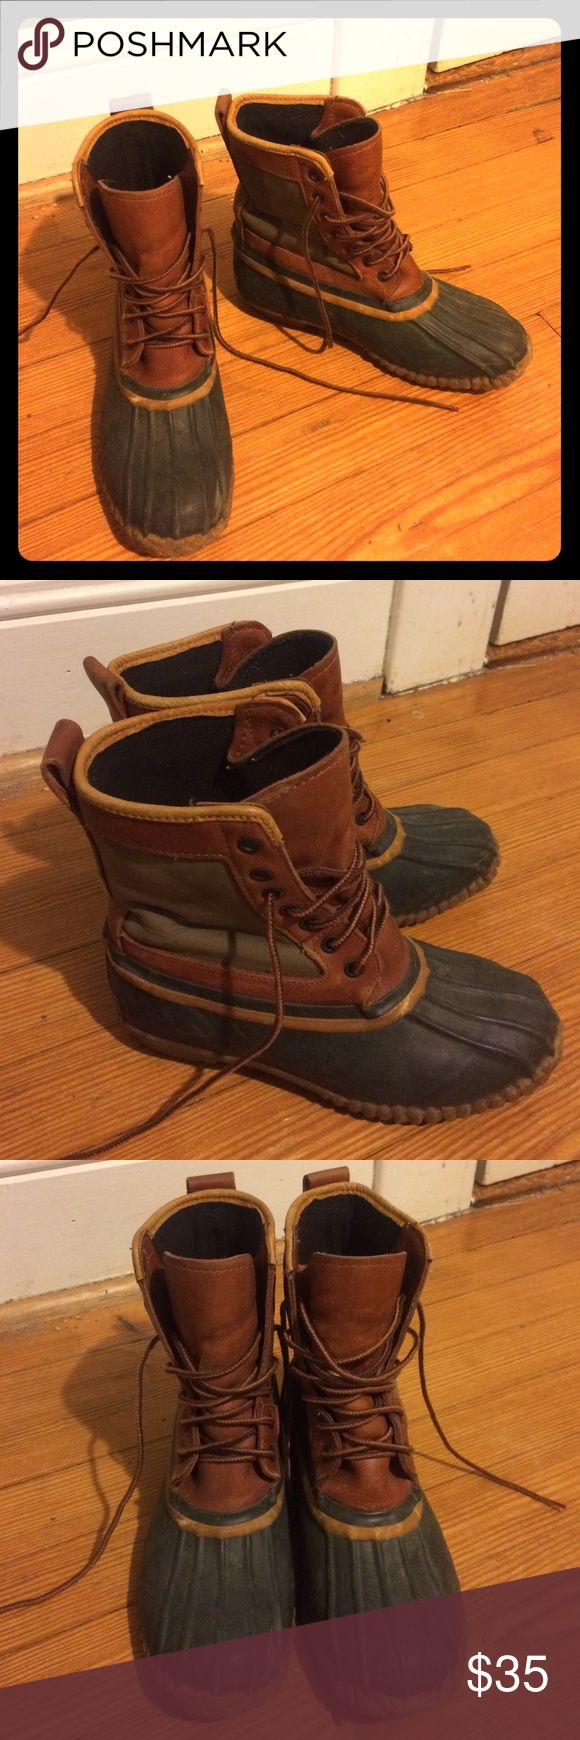 """Vintage waterproof timberland """"duck"""" boots I'm great condition, no tears. Have definitely seen some winters but can withstand a few more. I wear a size 7.5 and they fit, but I cannot wear thick socks with them. I imagine they fit a 6-7 best Timberland Shoes Winter & Rain Boots"""